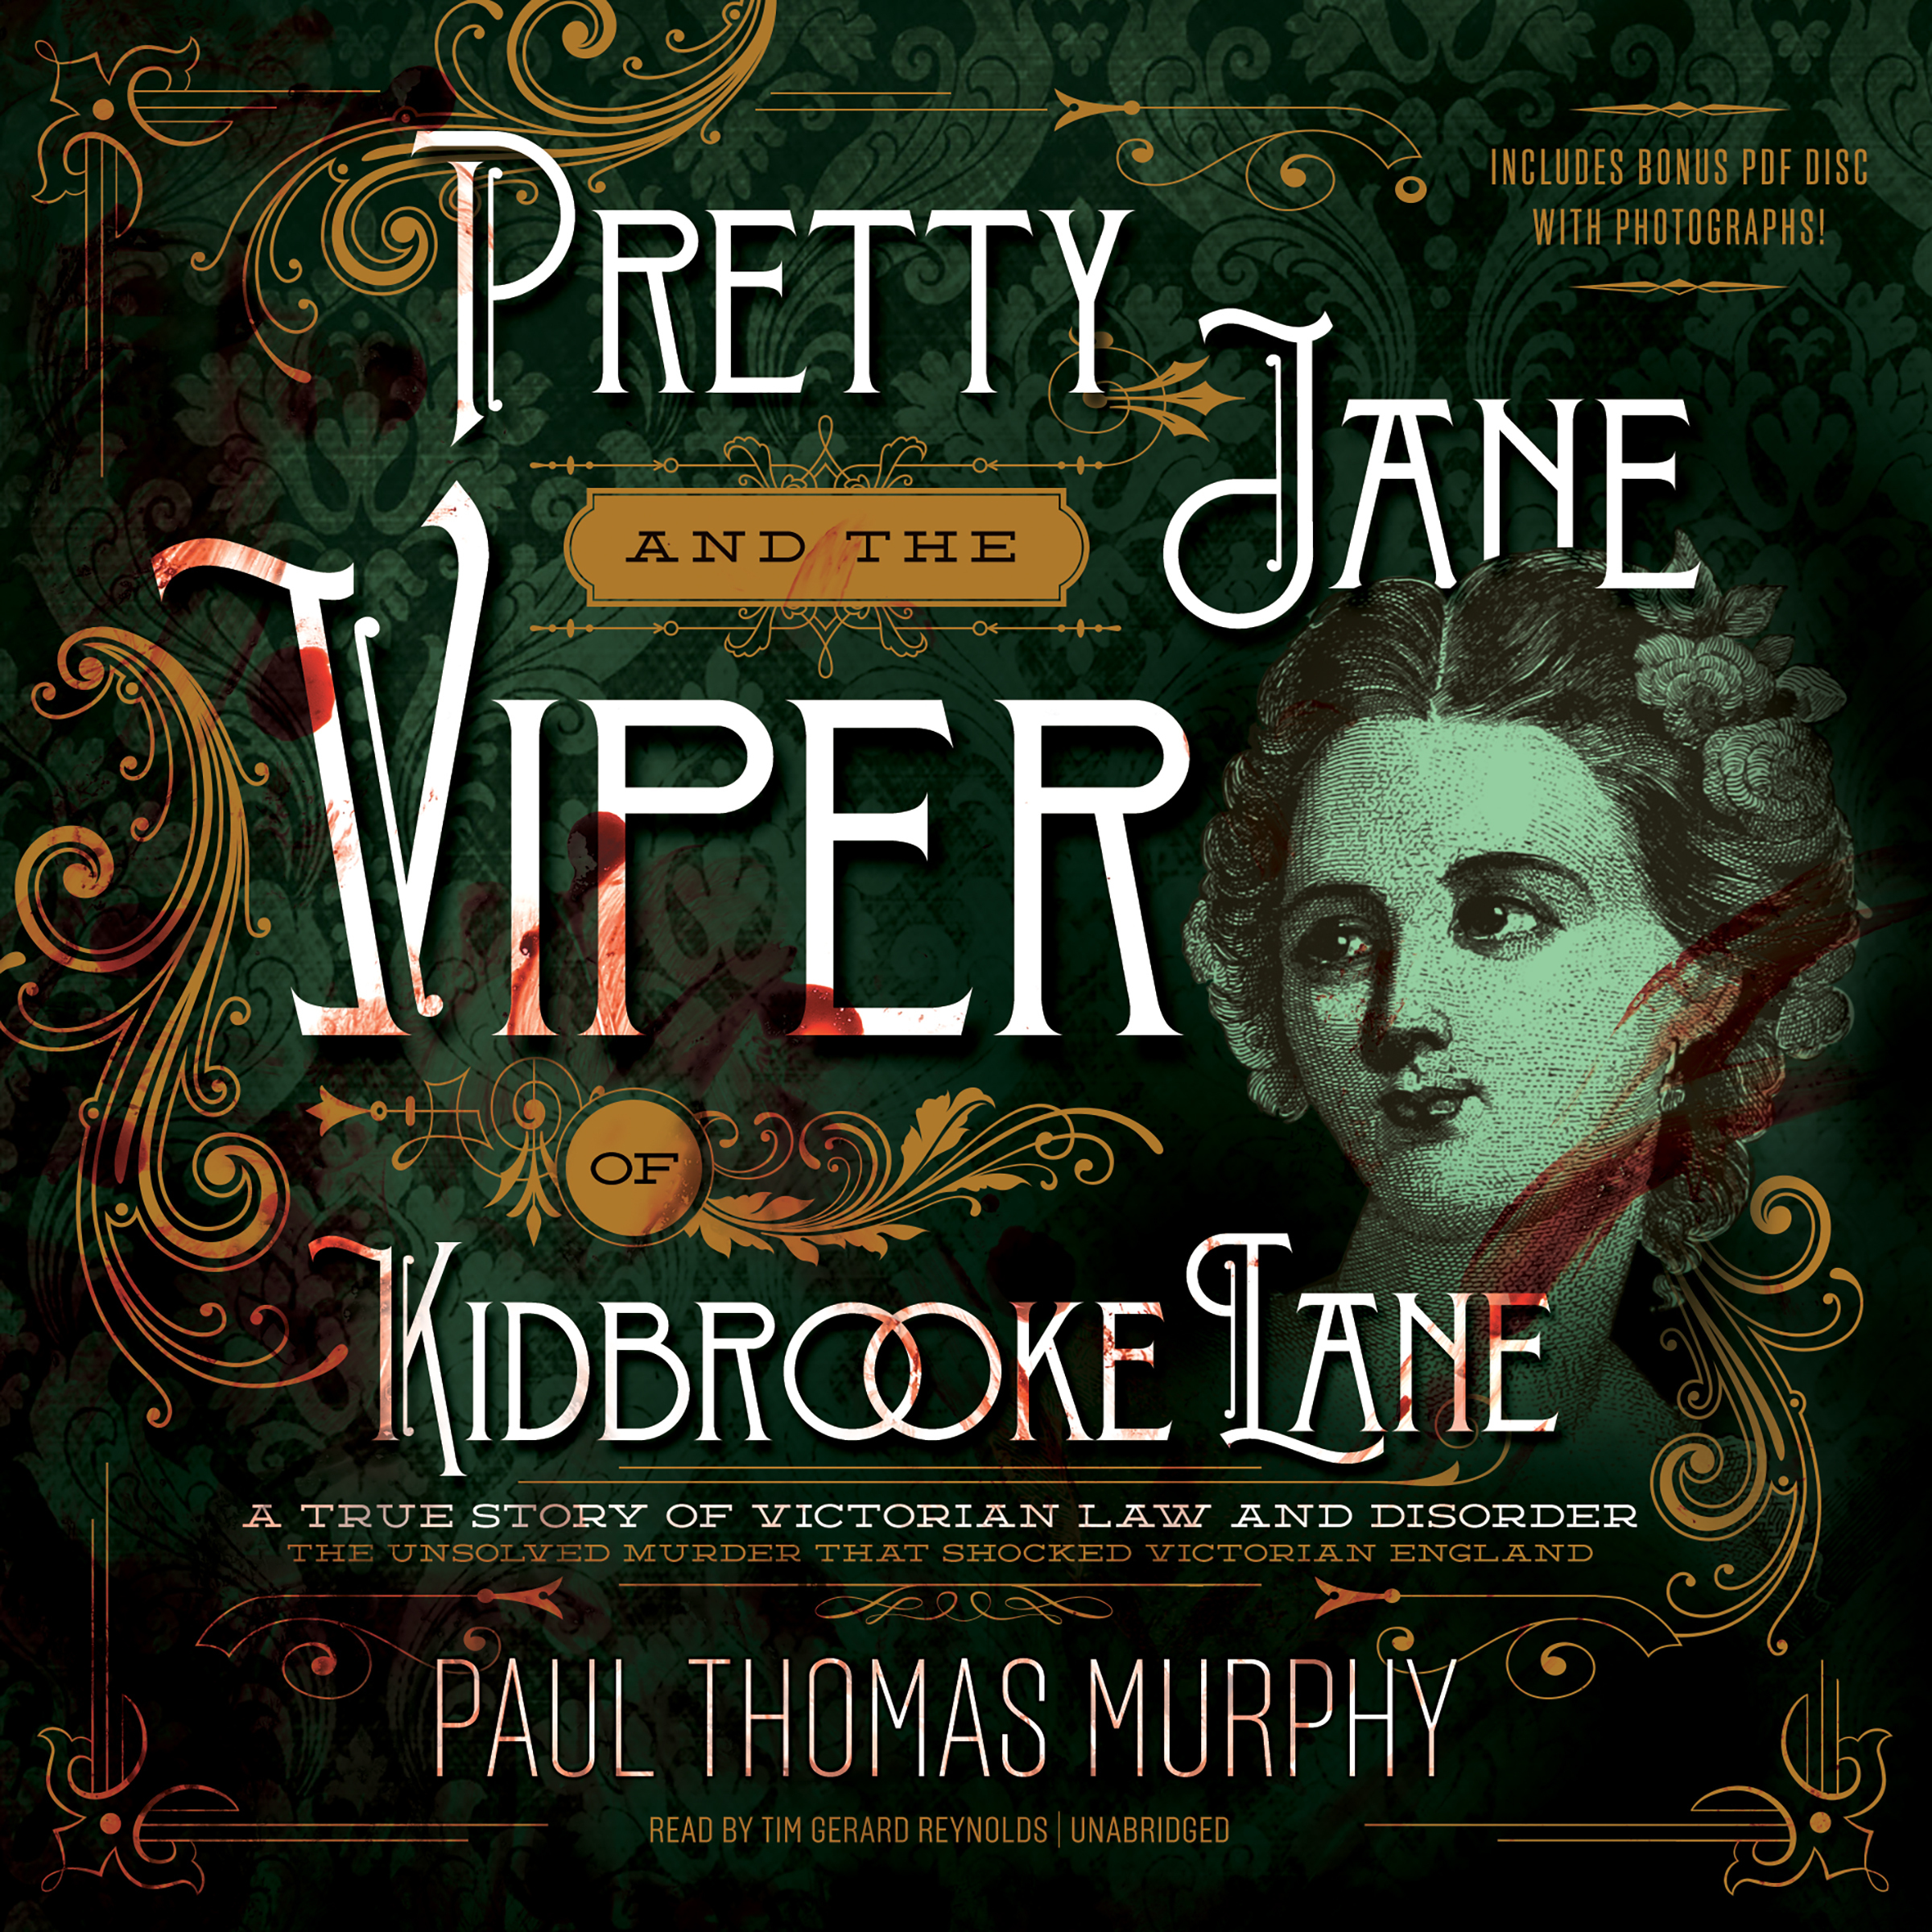 Printable Pretty Jane and the Viper of Kidbrooke Lane: A True Story of Victorian Law and Disorder Audiobook Cover Art